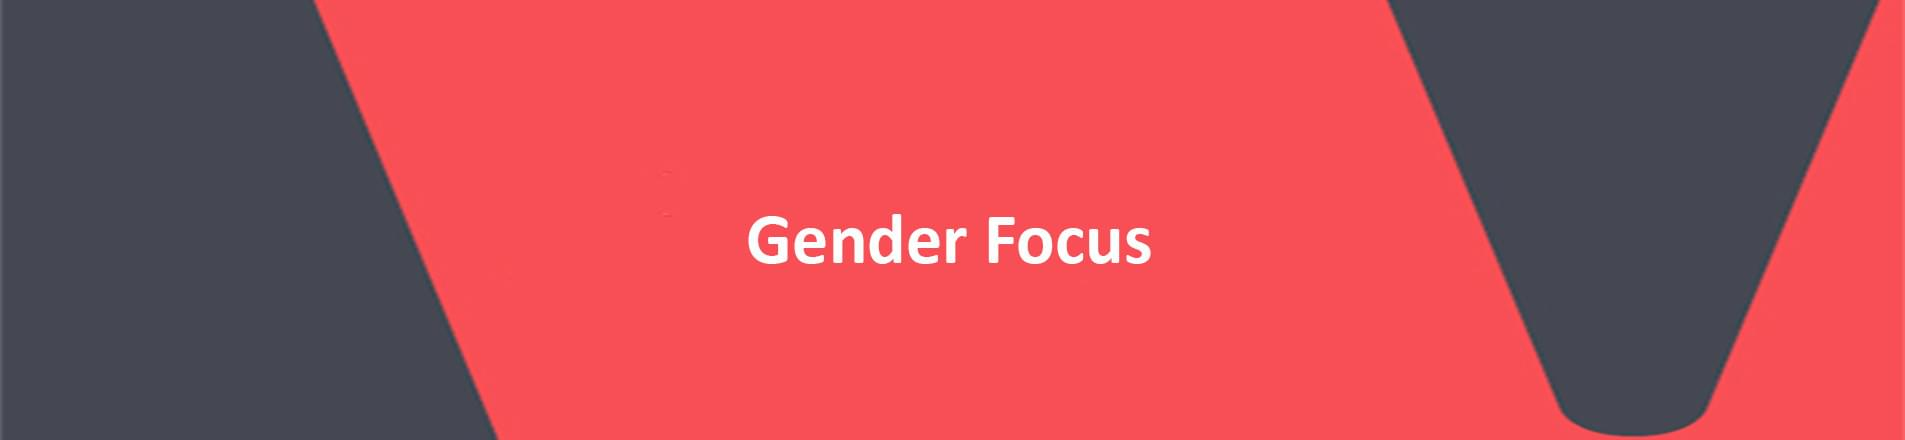 """Image of VERCIDA banner.  Red background with """"Gender Focus"""" in white letters."""